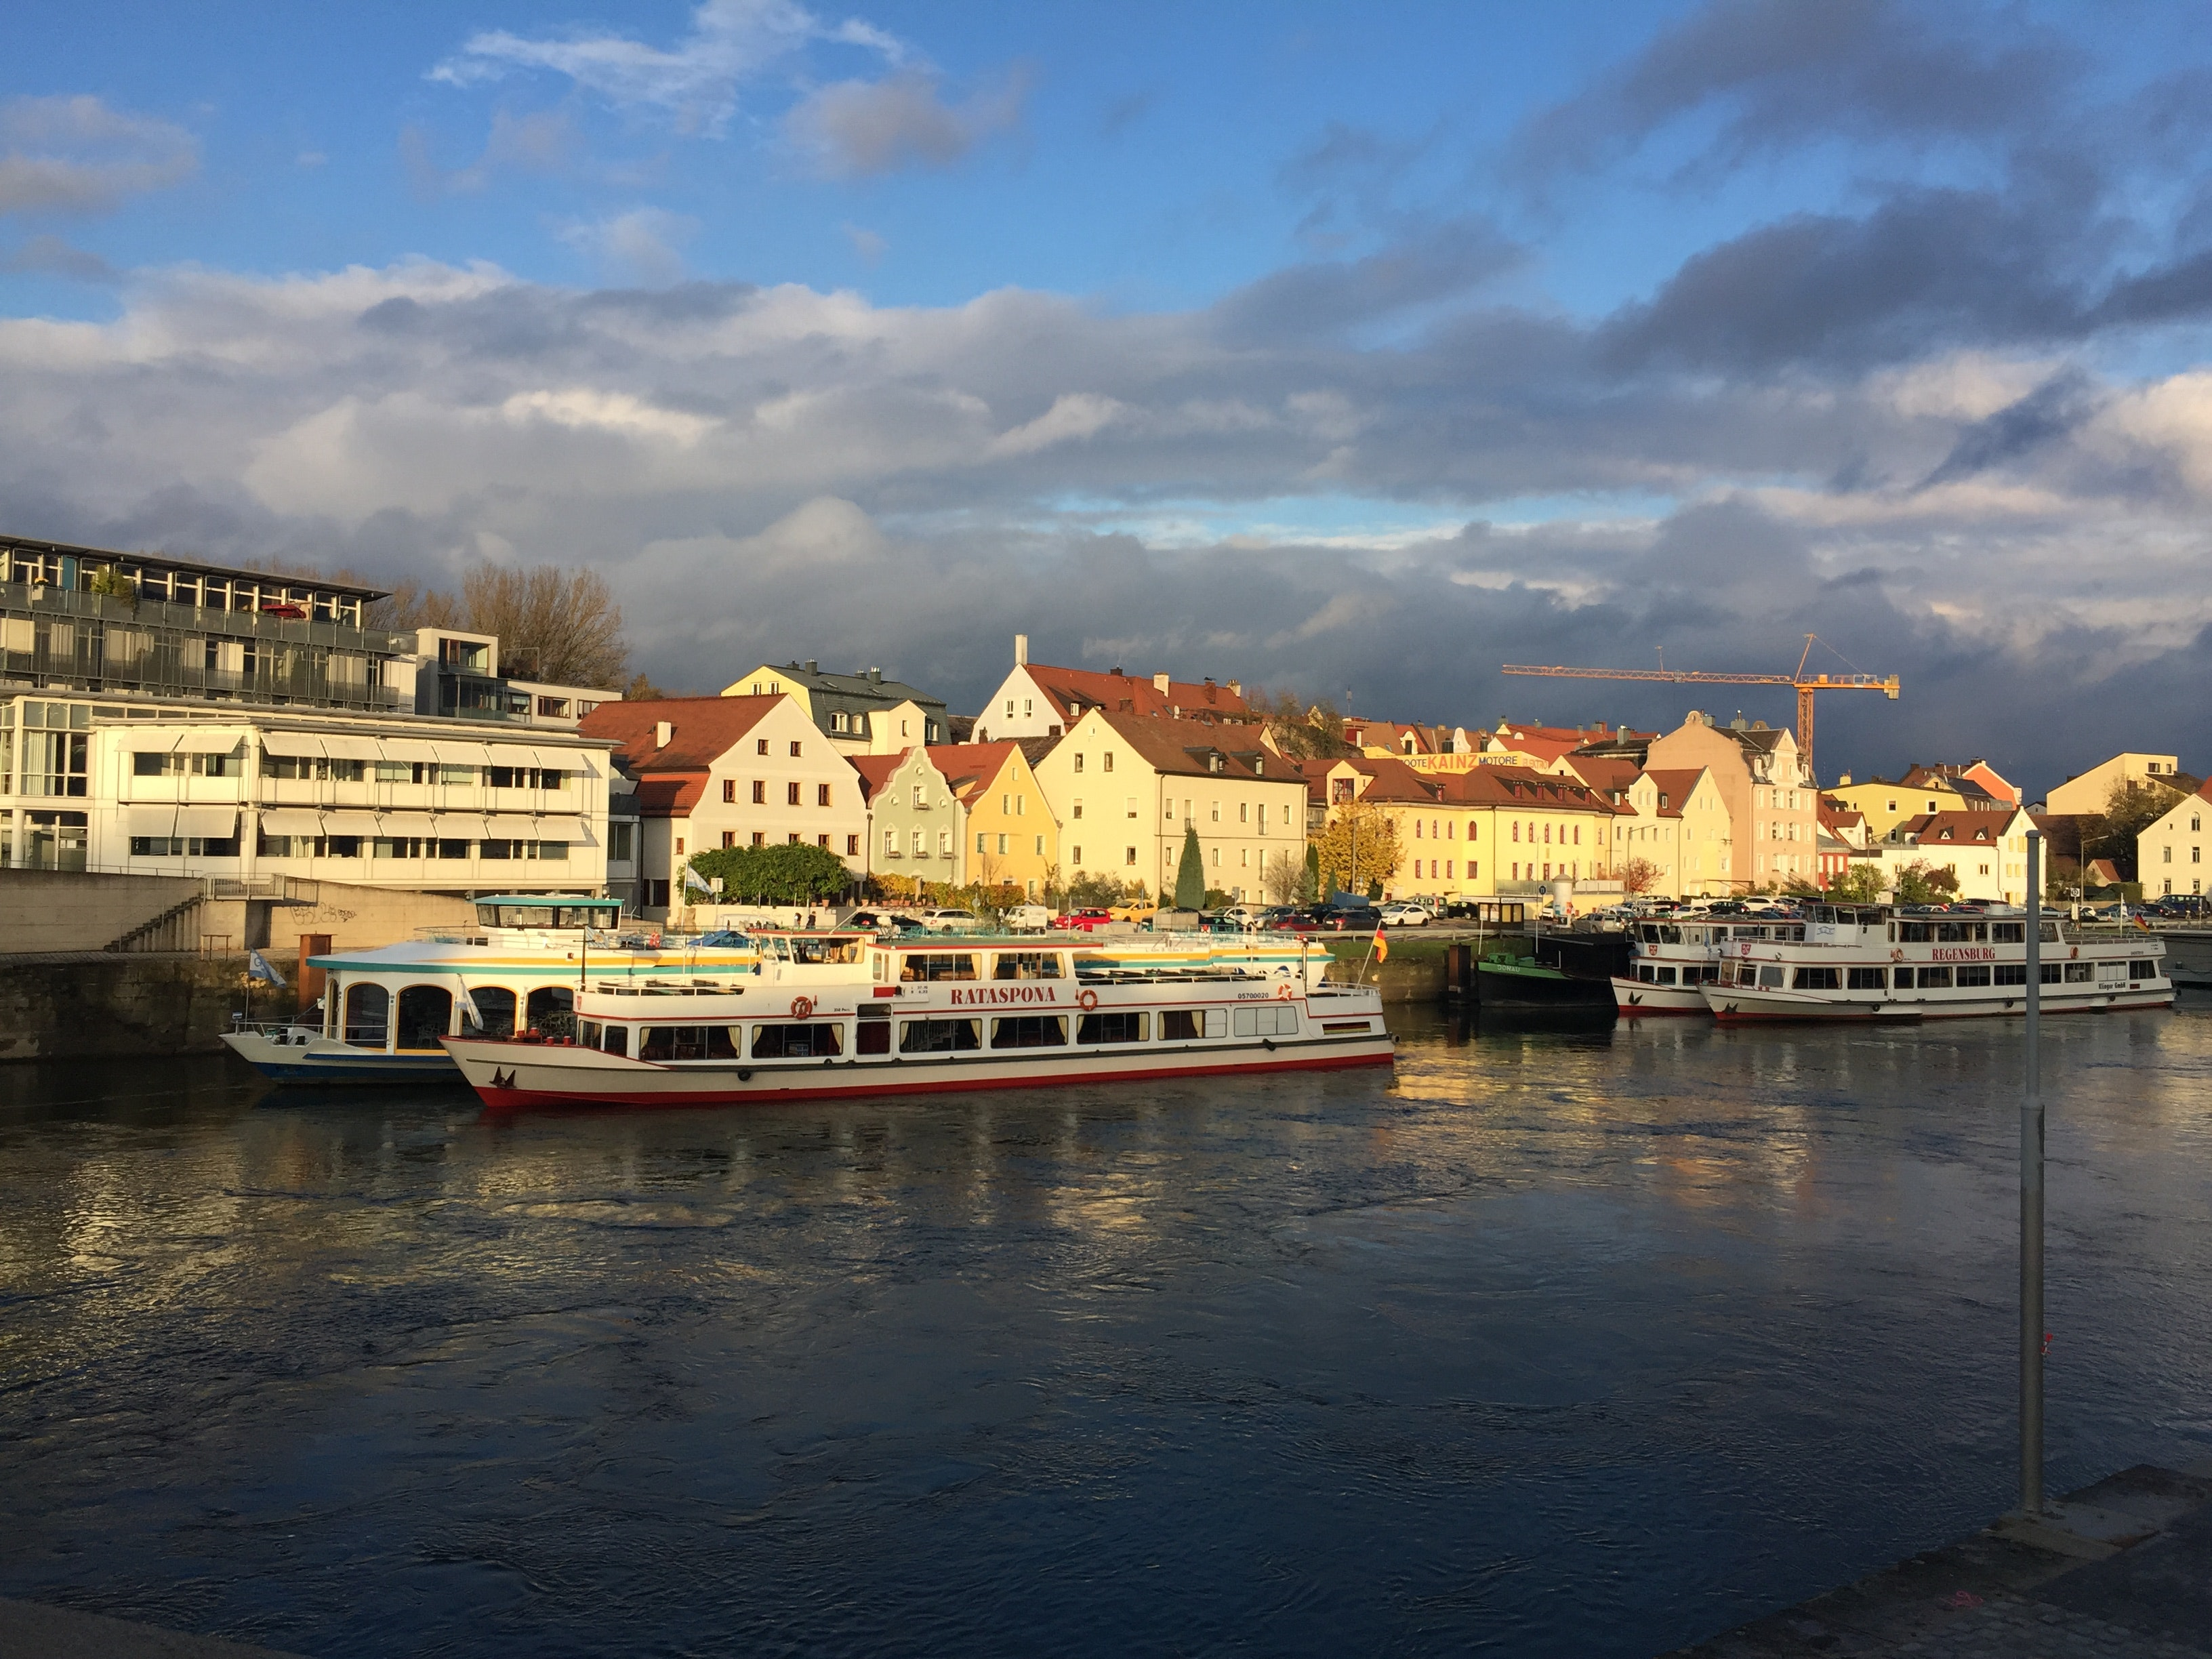 Free stock photo of Danube River Regensburg Germany